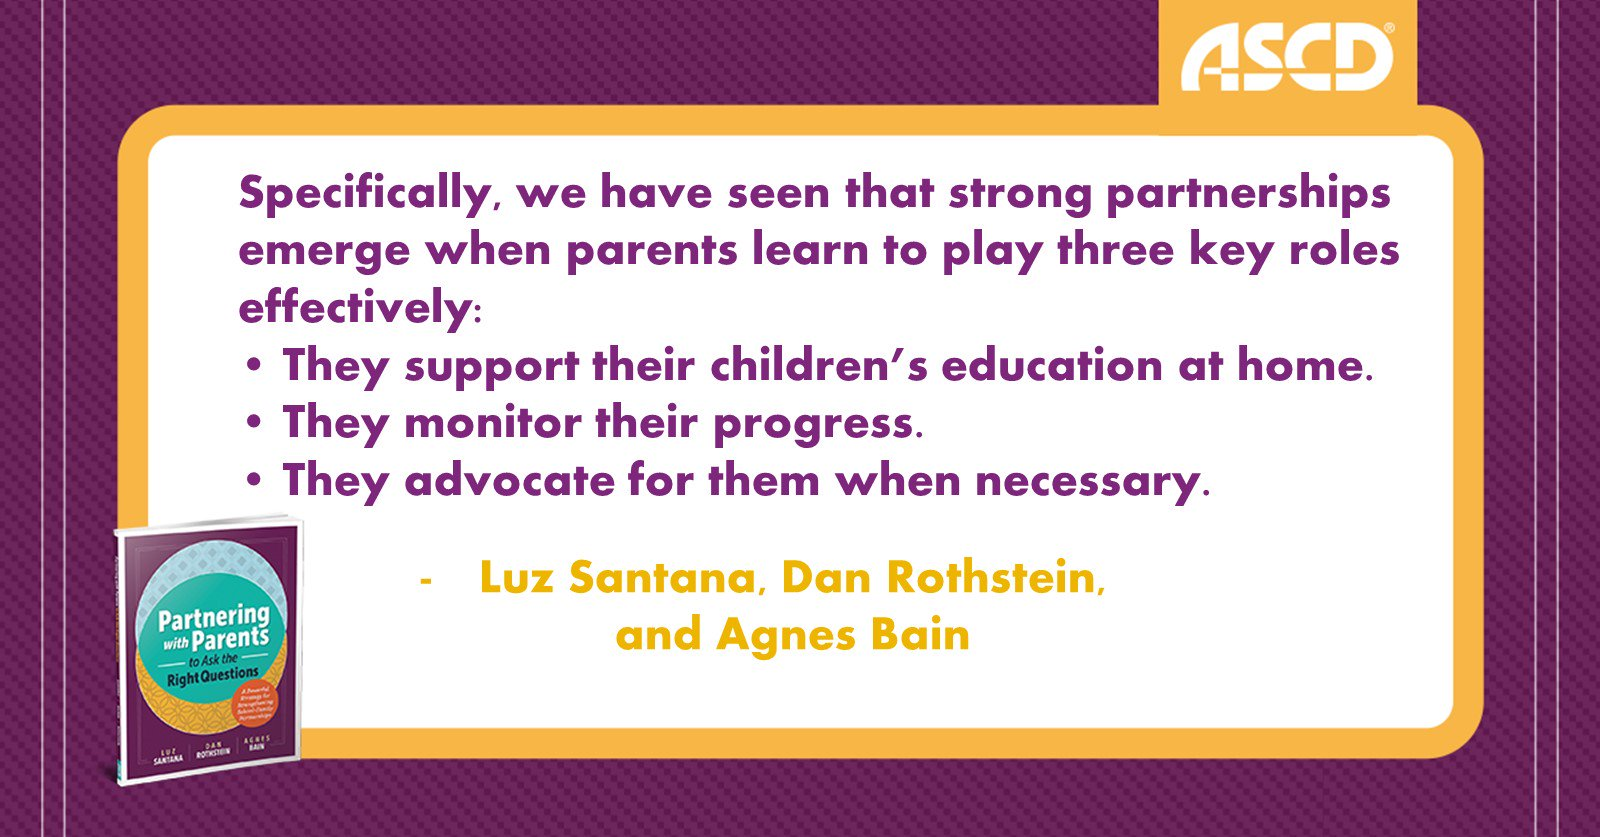 Help parents learn to play 3 key roles that support their child's #education: https://t.co/YnV0fgorf6 #teachers https://t.co/BgAyXL8KzK